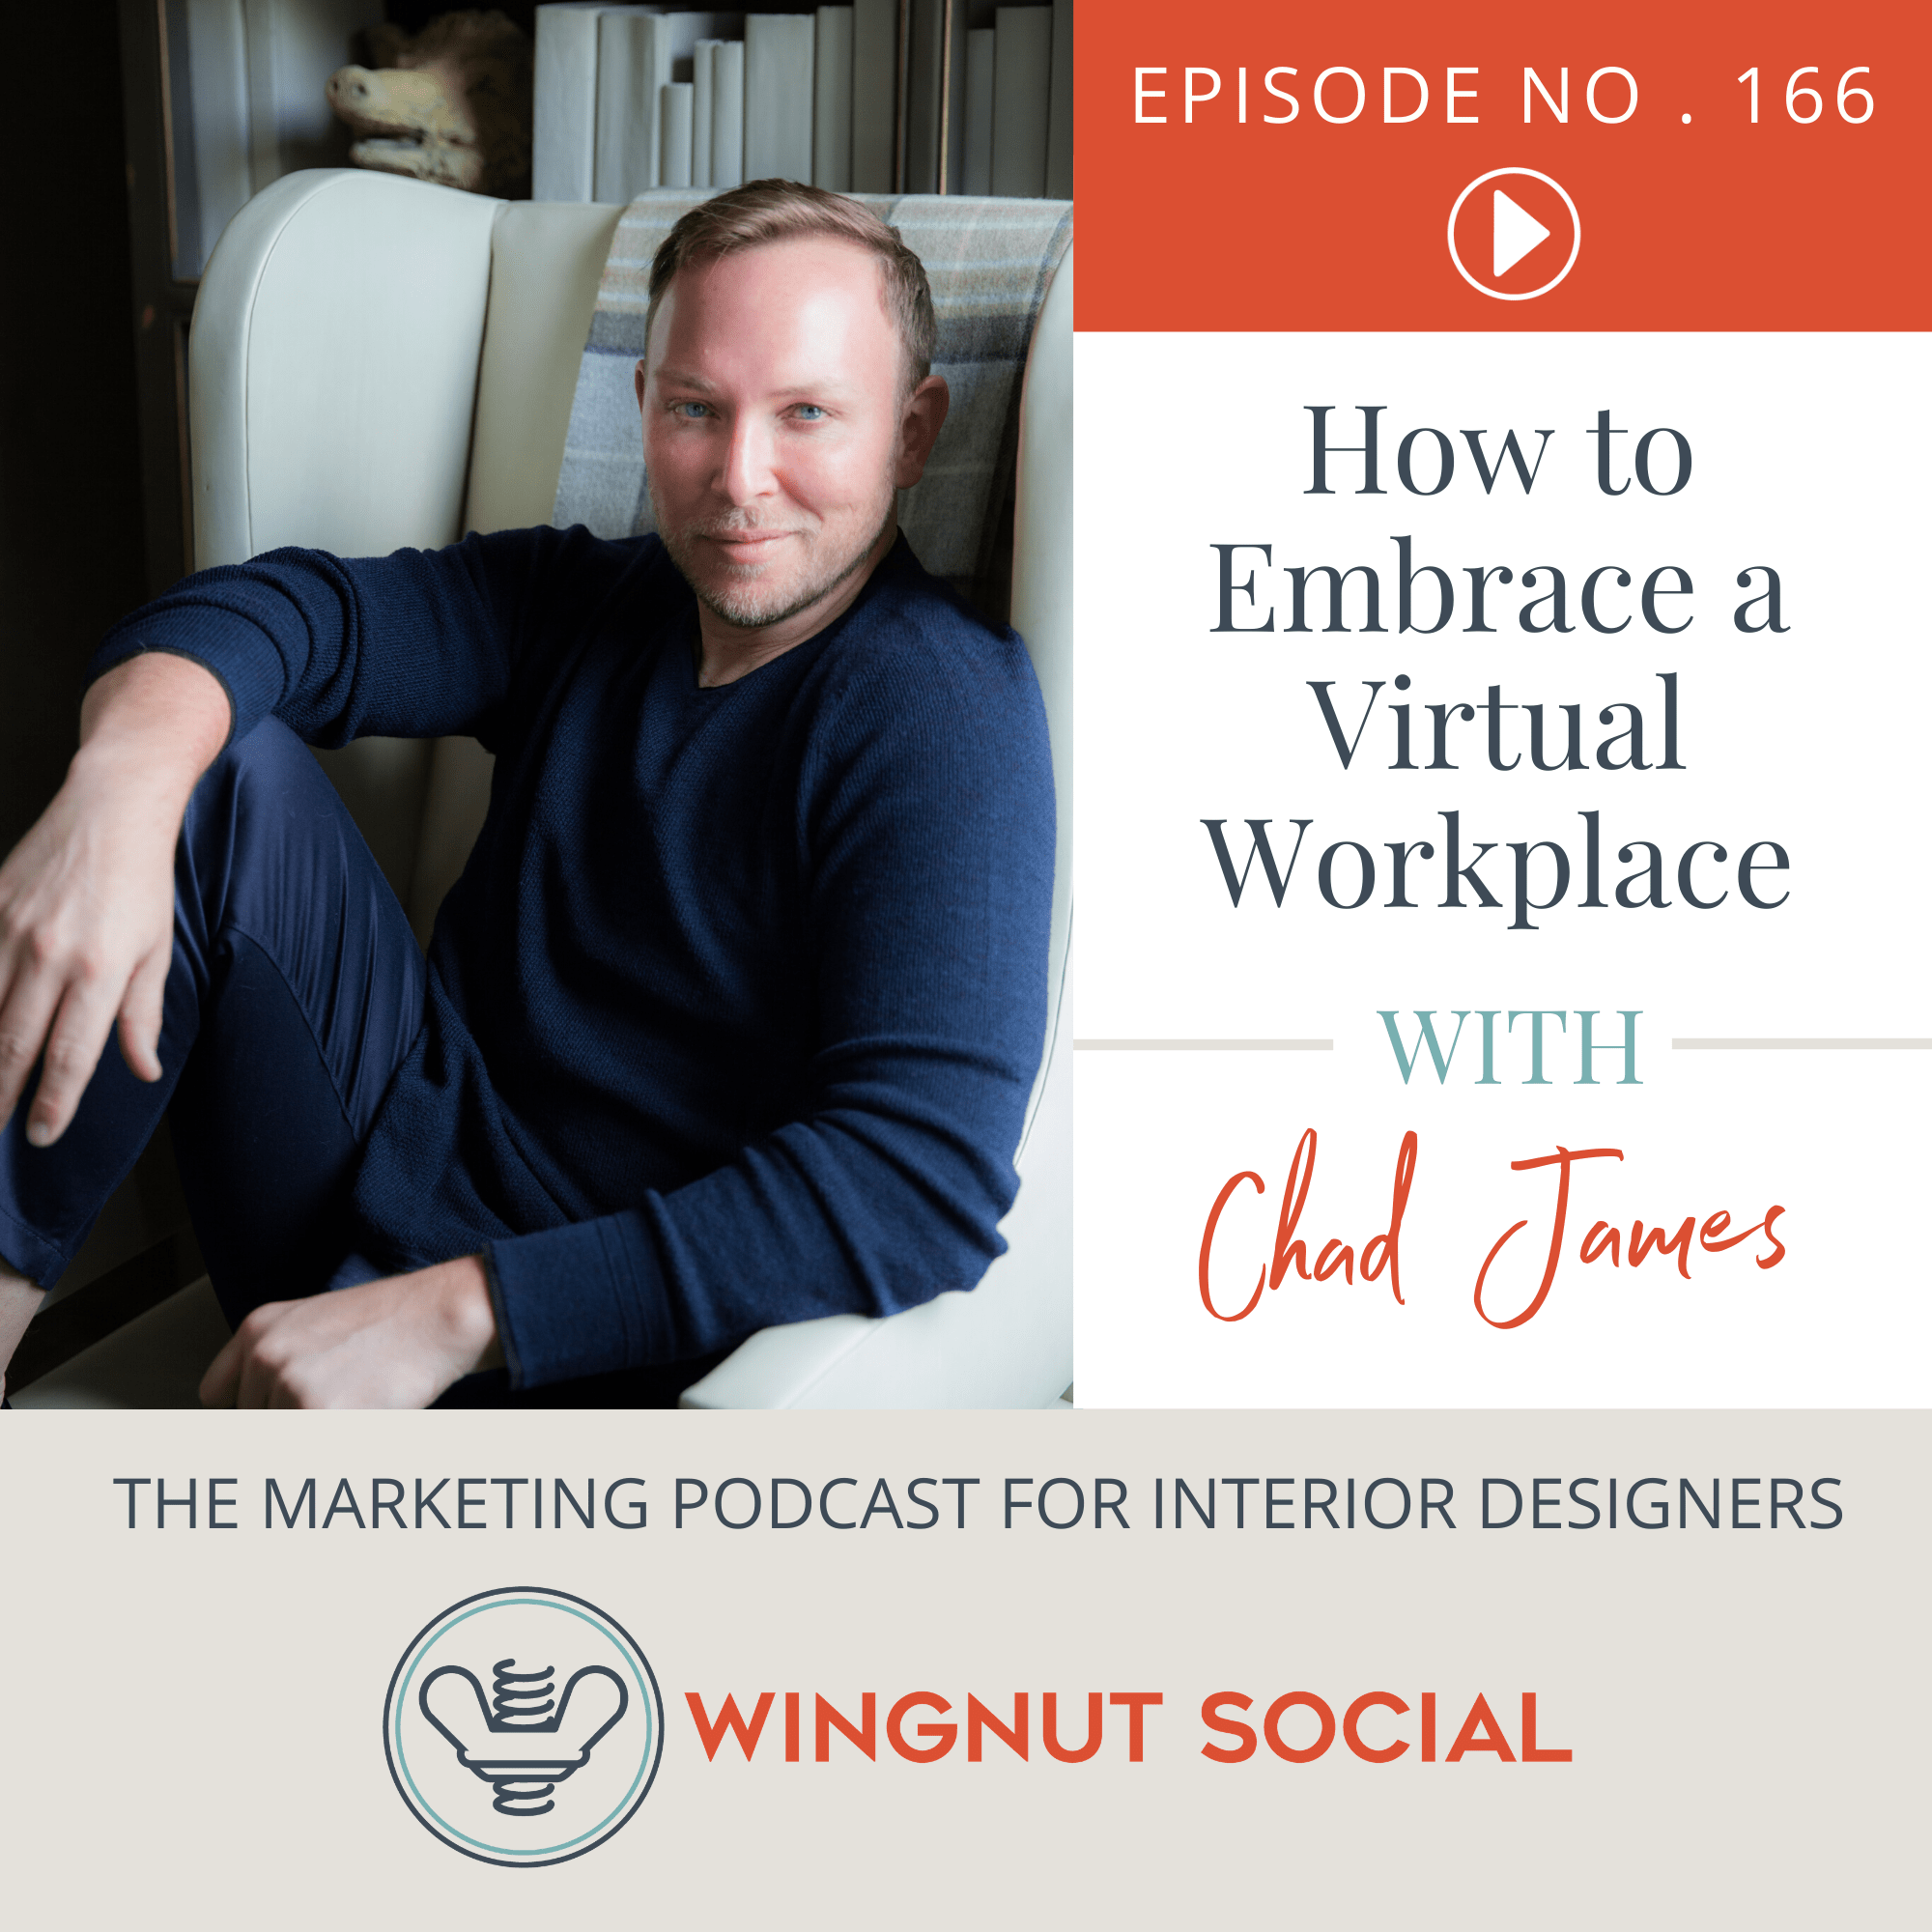 How to Embrace a Virtual Workplace with Chad James - Episode 166